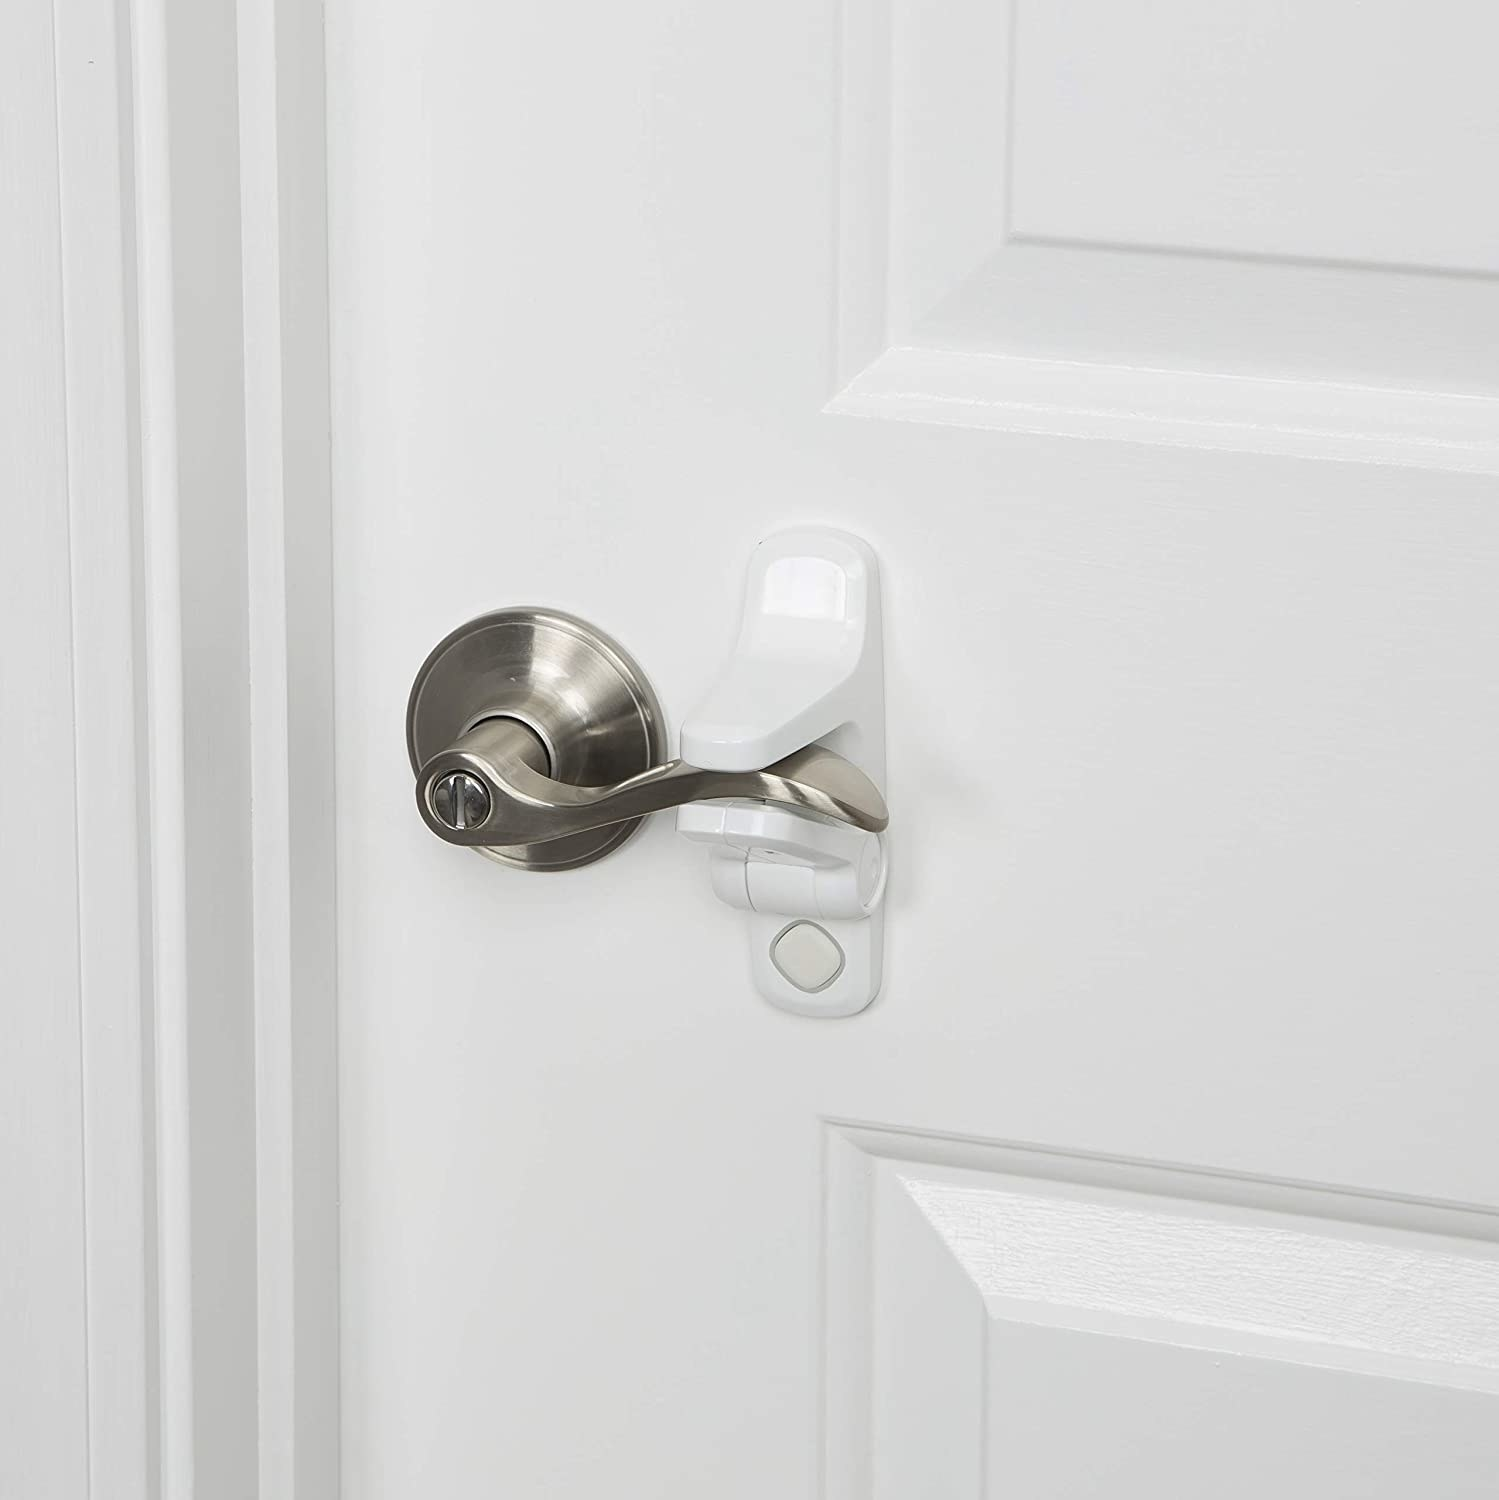 A lever door handle being held in place with a white lock. The lock is placed above and below the handle and has a push-button release system.